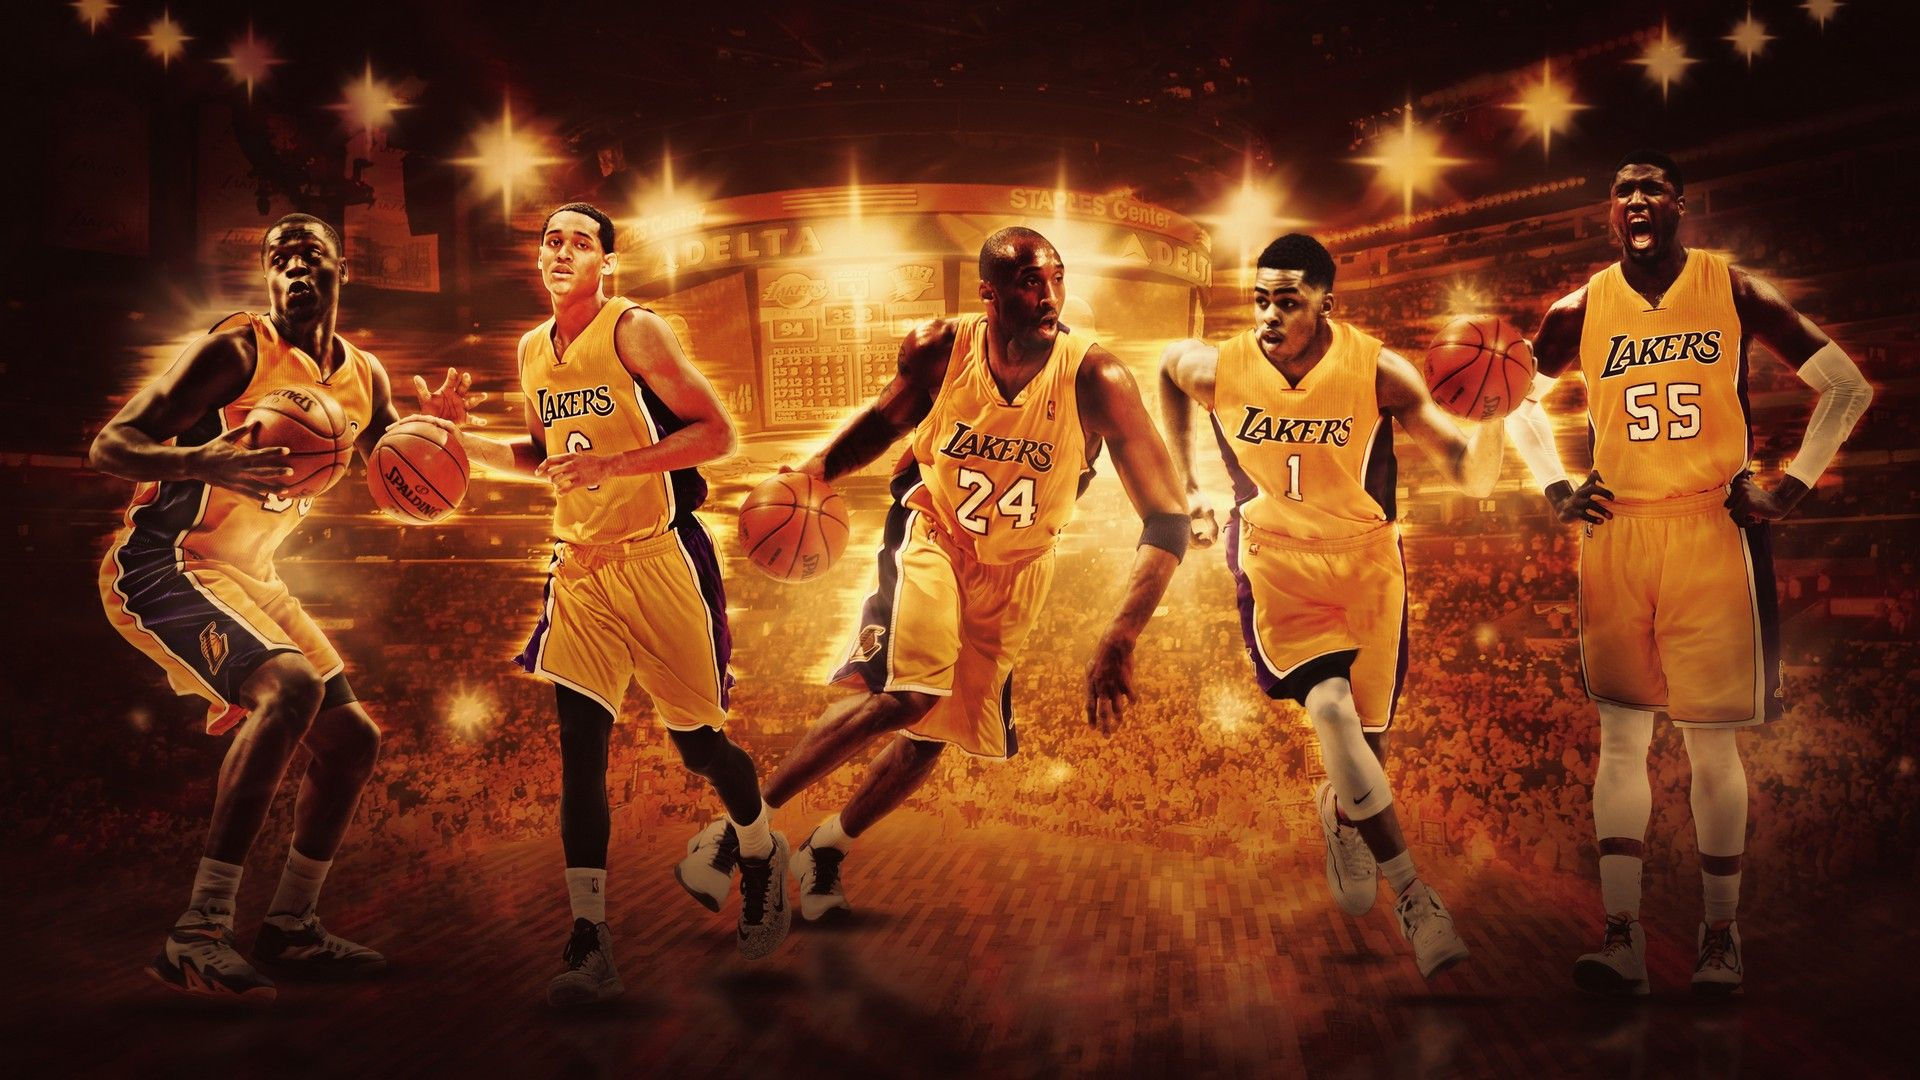 Hd Desktop Wallpaper La Lakers In 2020 La Lakers Basketball Wallpaper Lakers